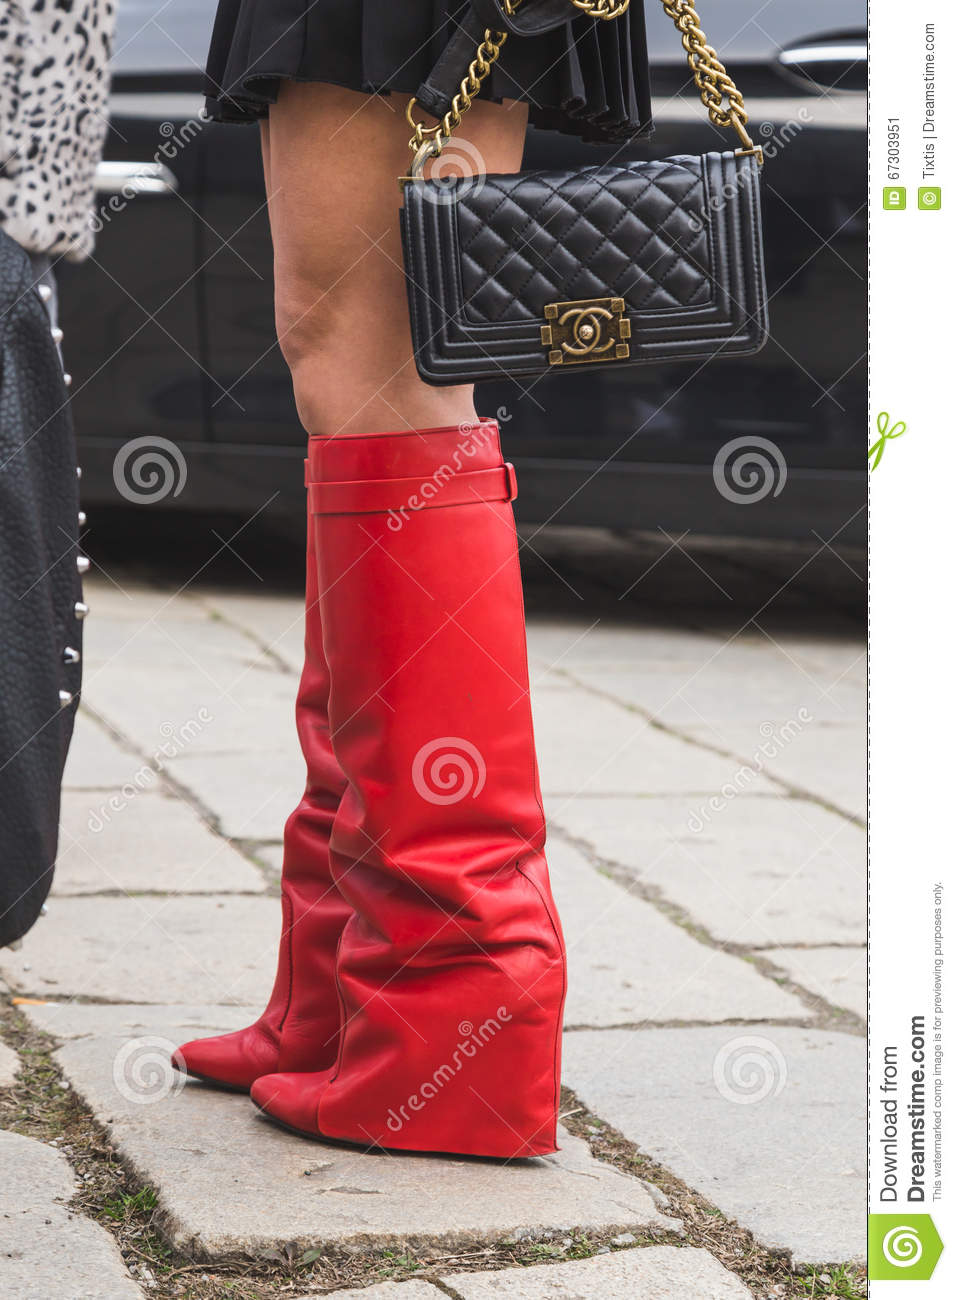 43fe5886 MILAN, ITALY - FEBRUARY 24: Detail of boots outside Gucci fashion show  building for Milan Women's Fashion Week on FEBRUARY 24, 2016 in Milan.